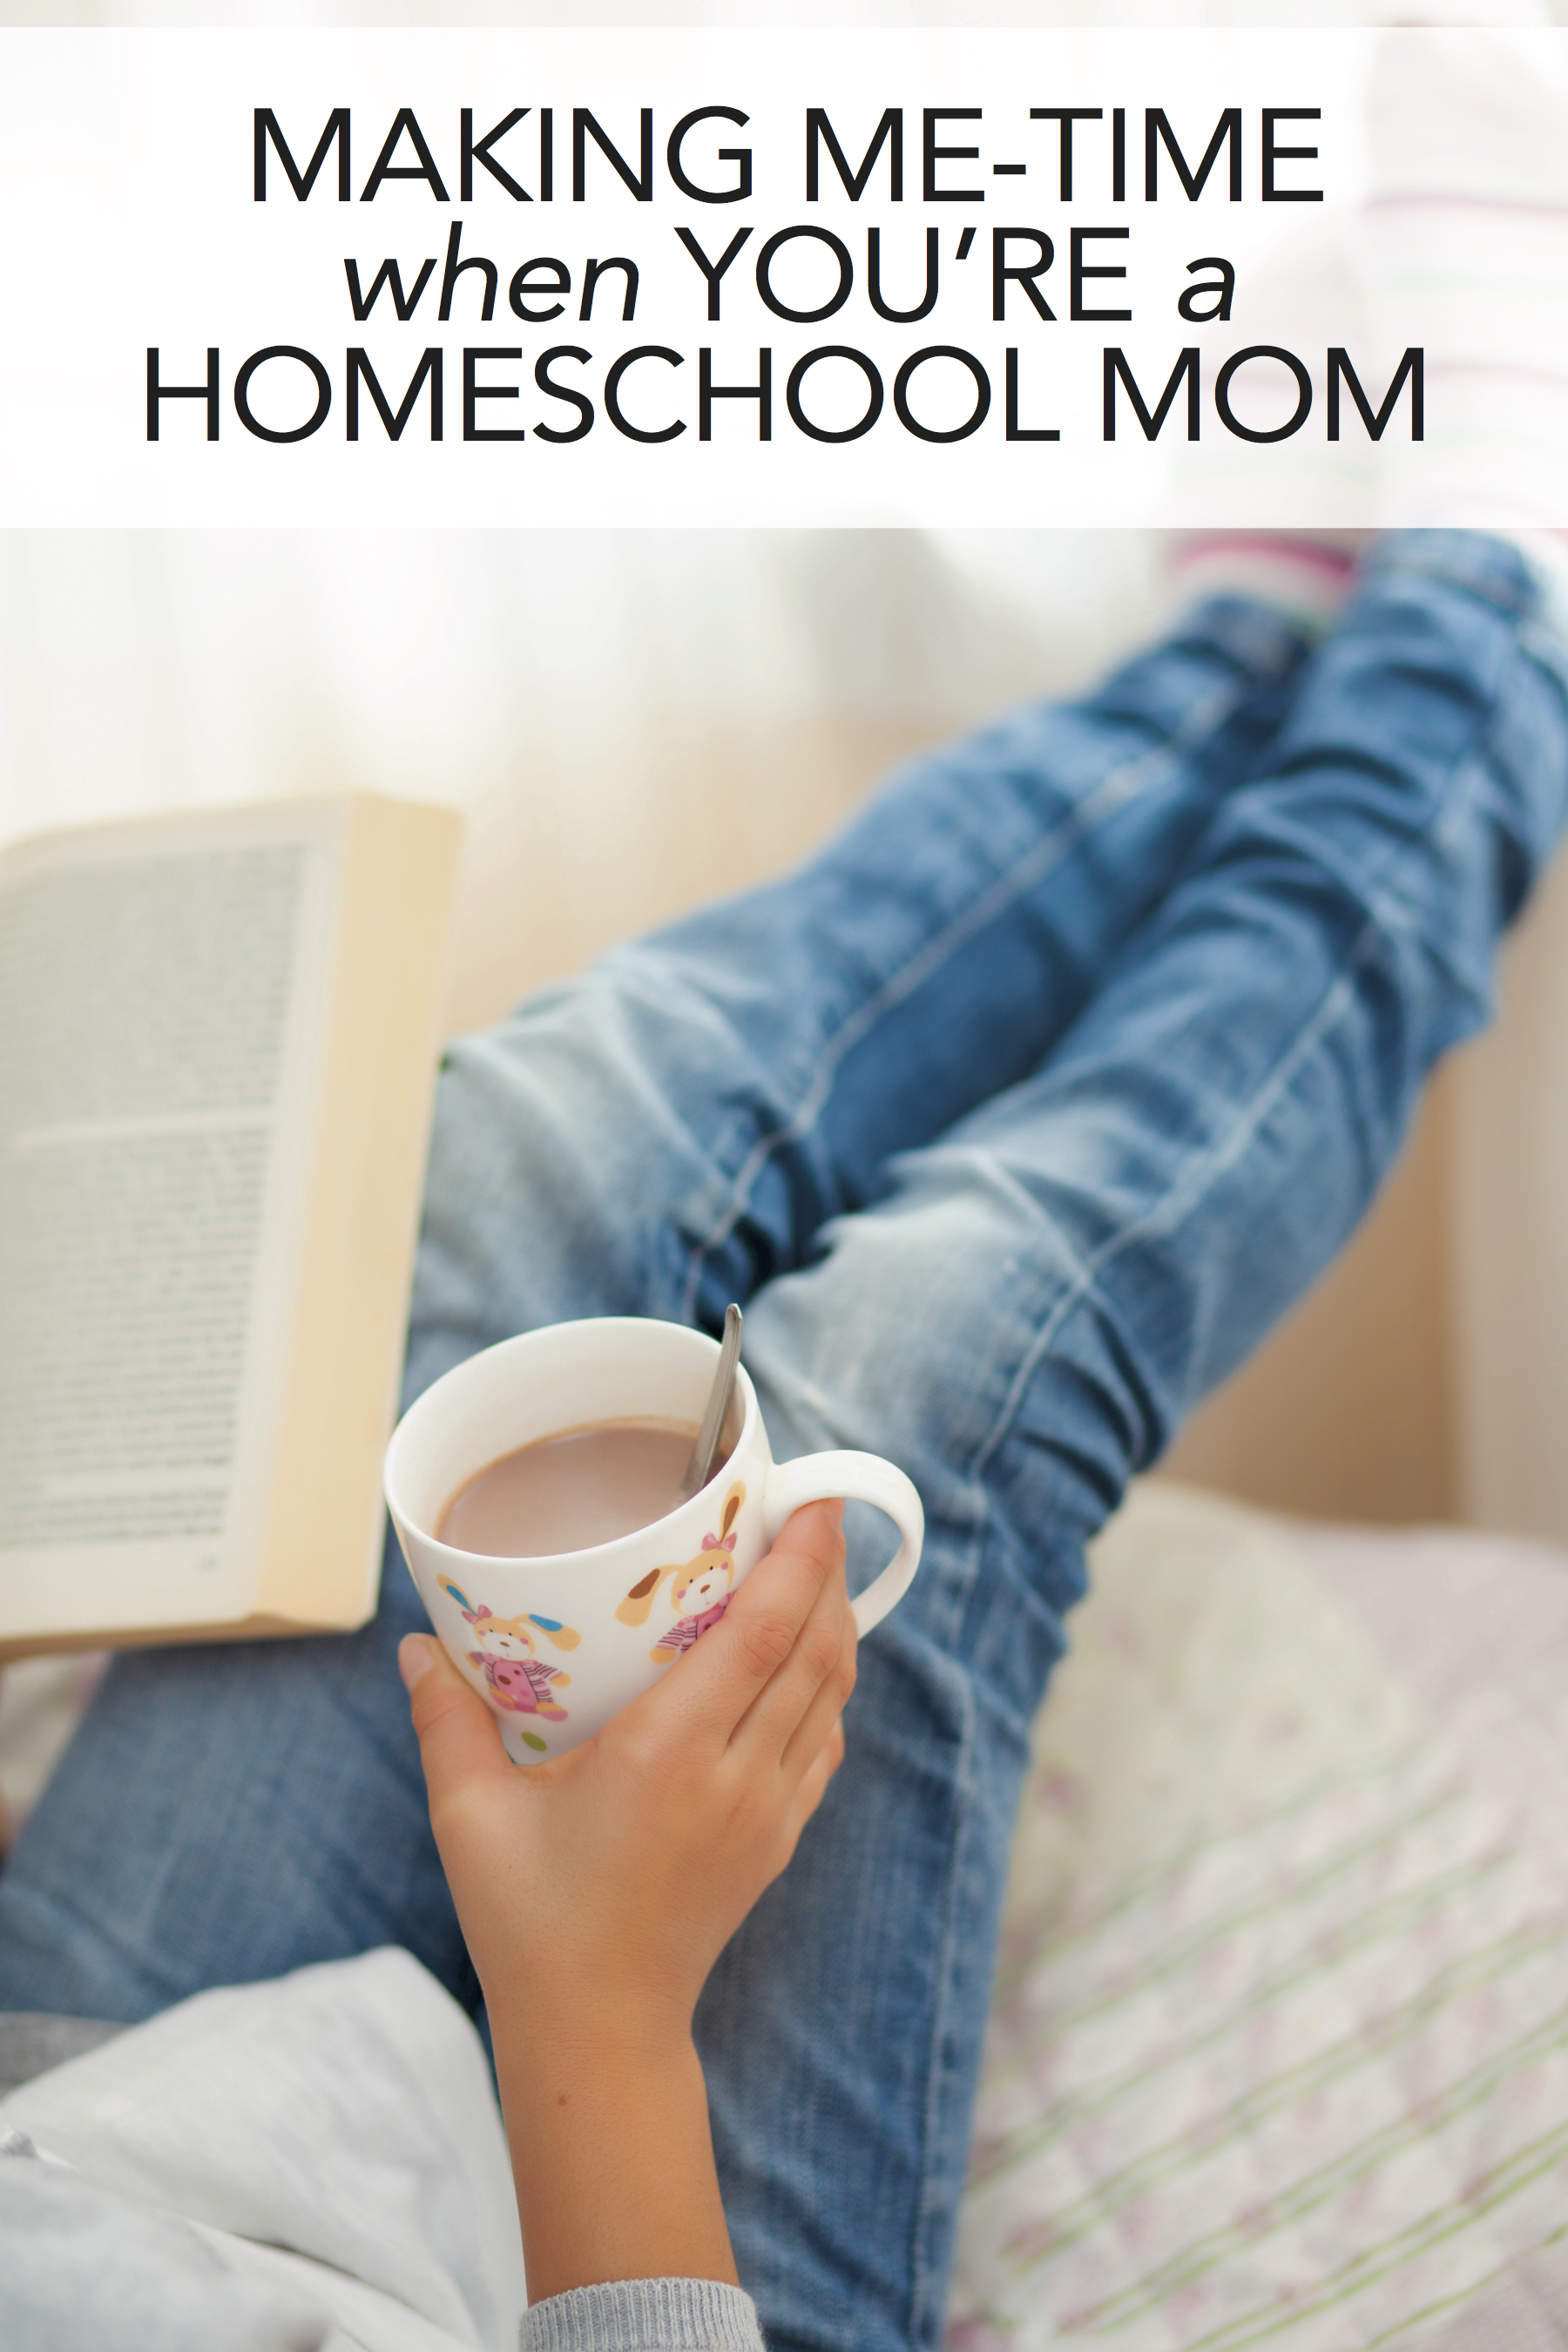 Real Ways to Make a Little Me-Time When You're a Homeschool Mom